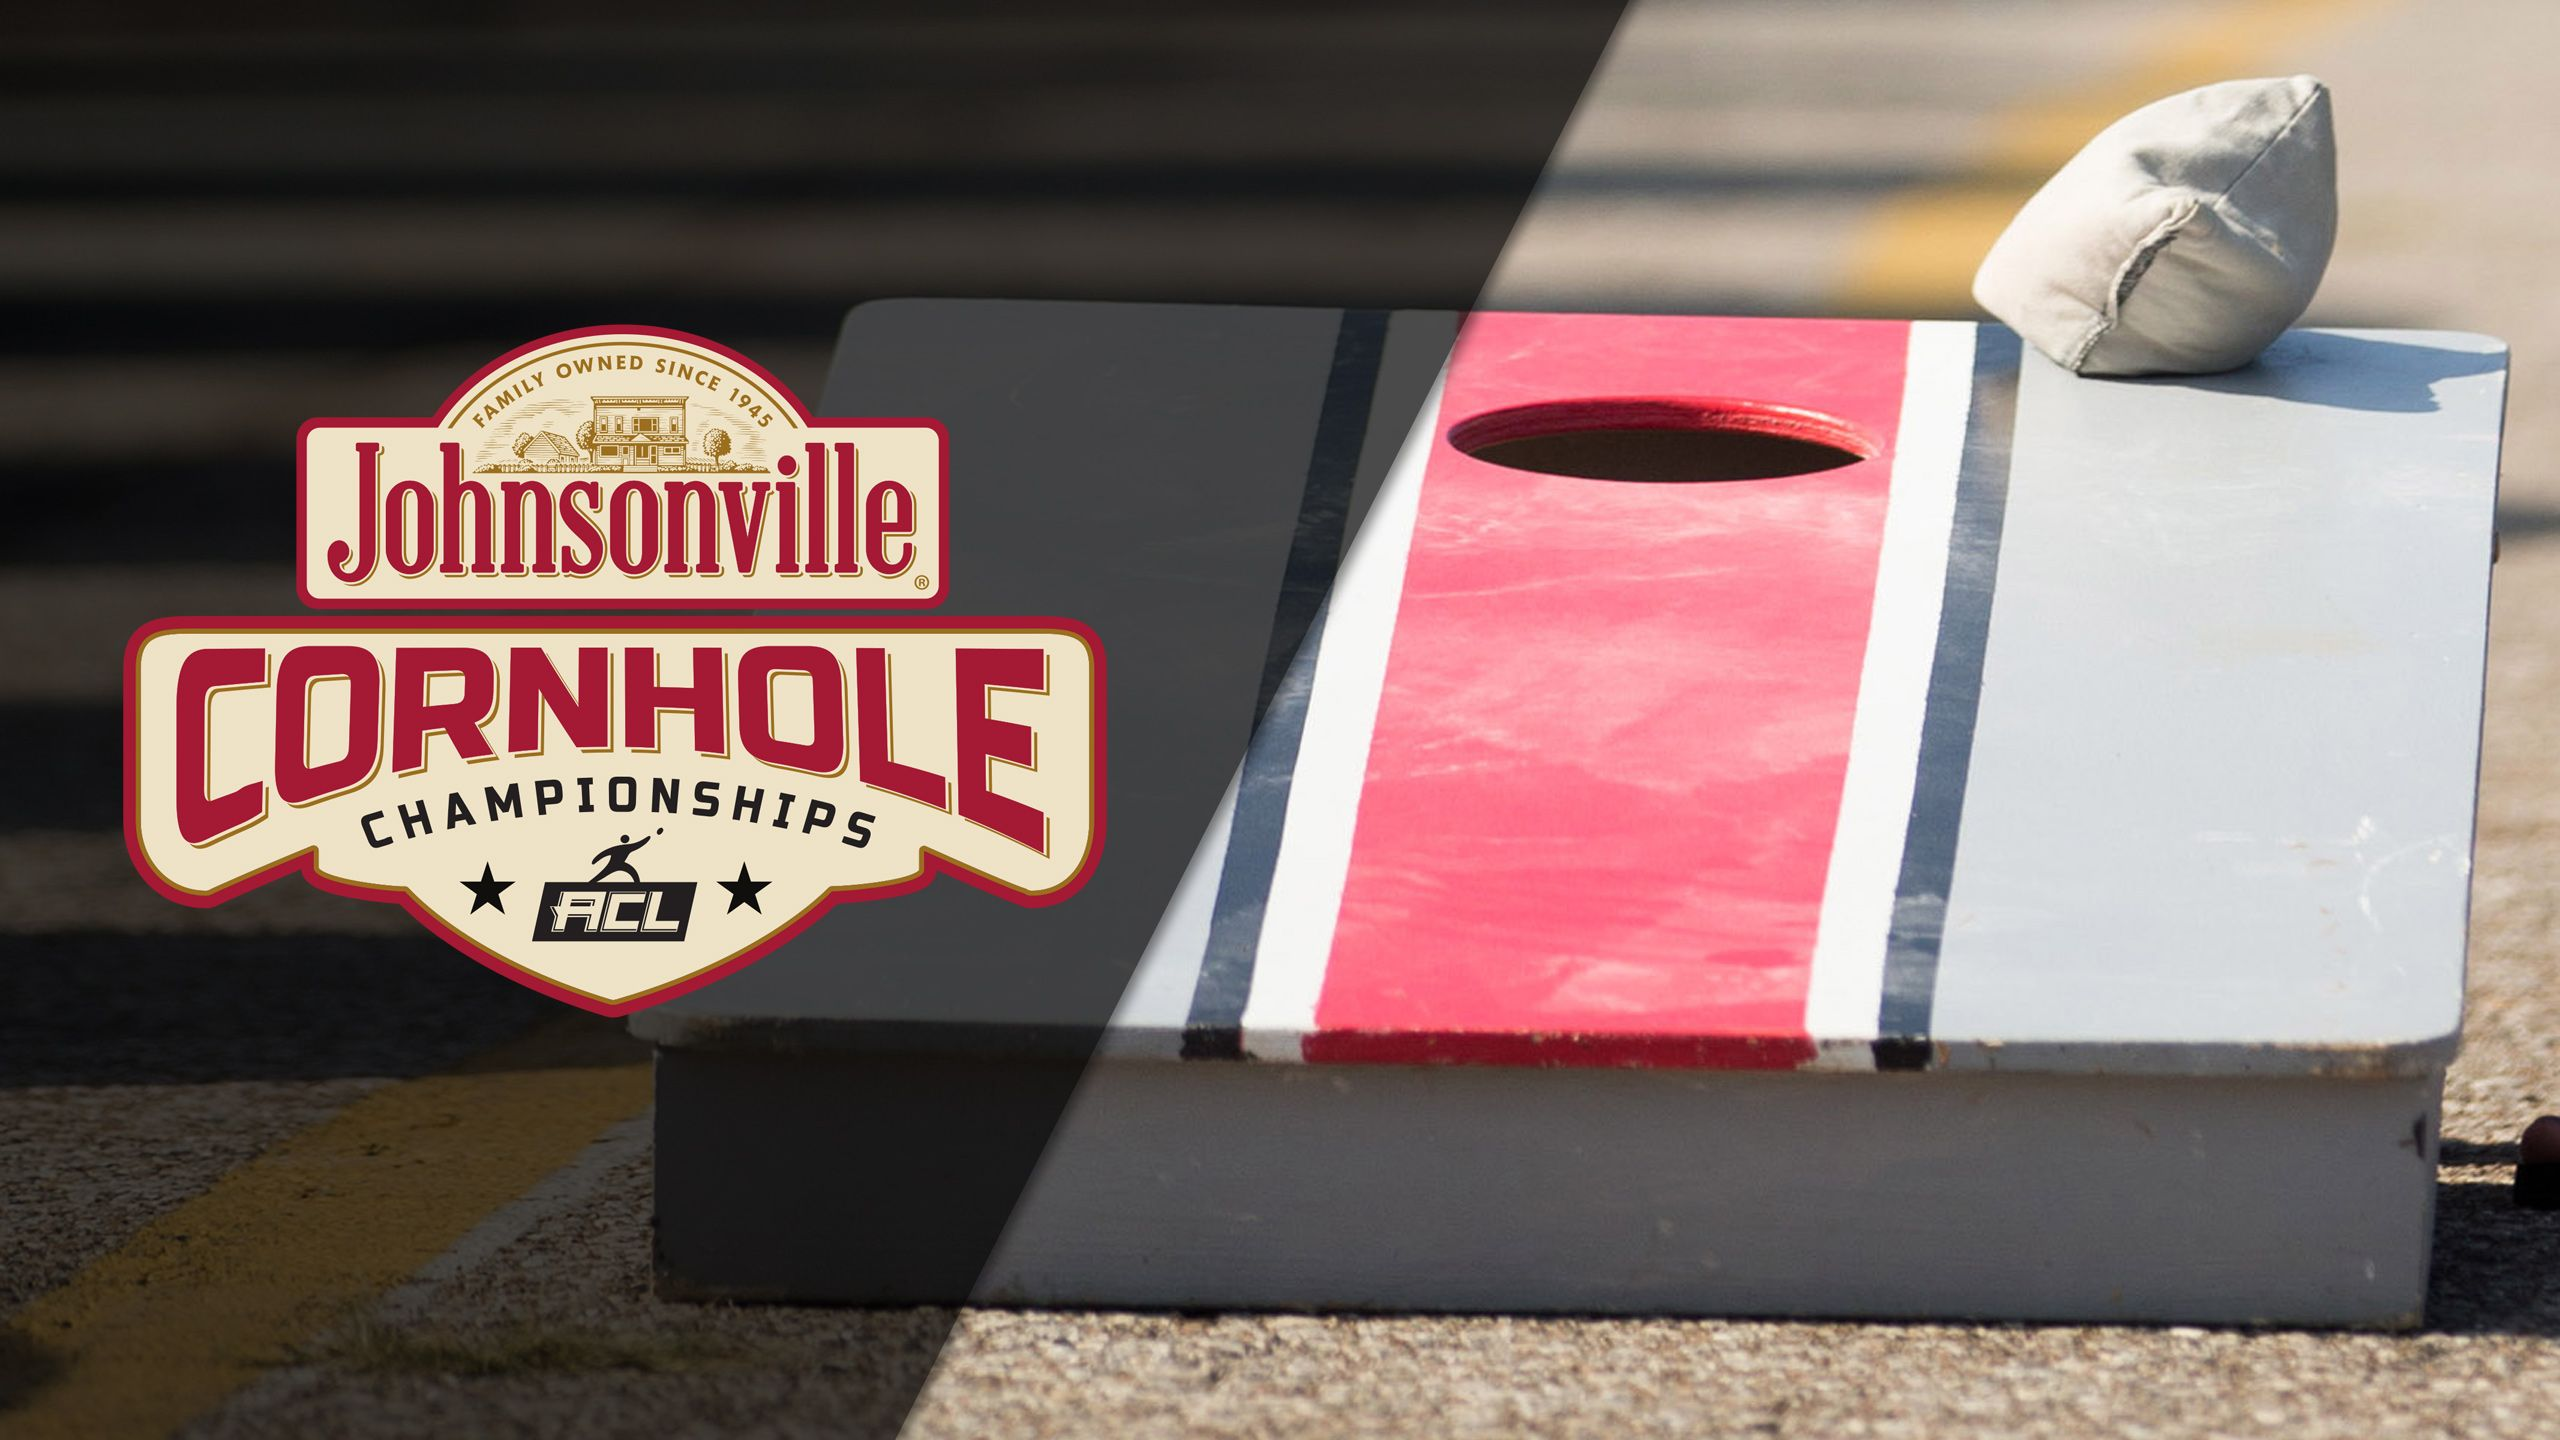 Johnsonville Cornhole Championships: ACL Kick-Off Battle